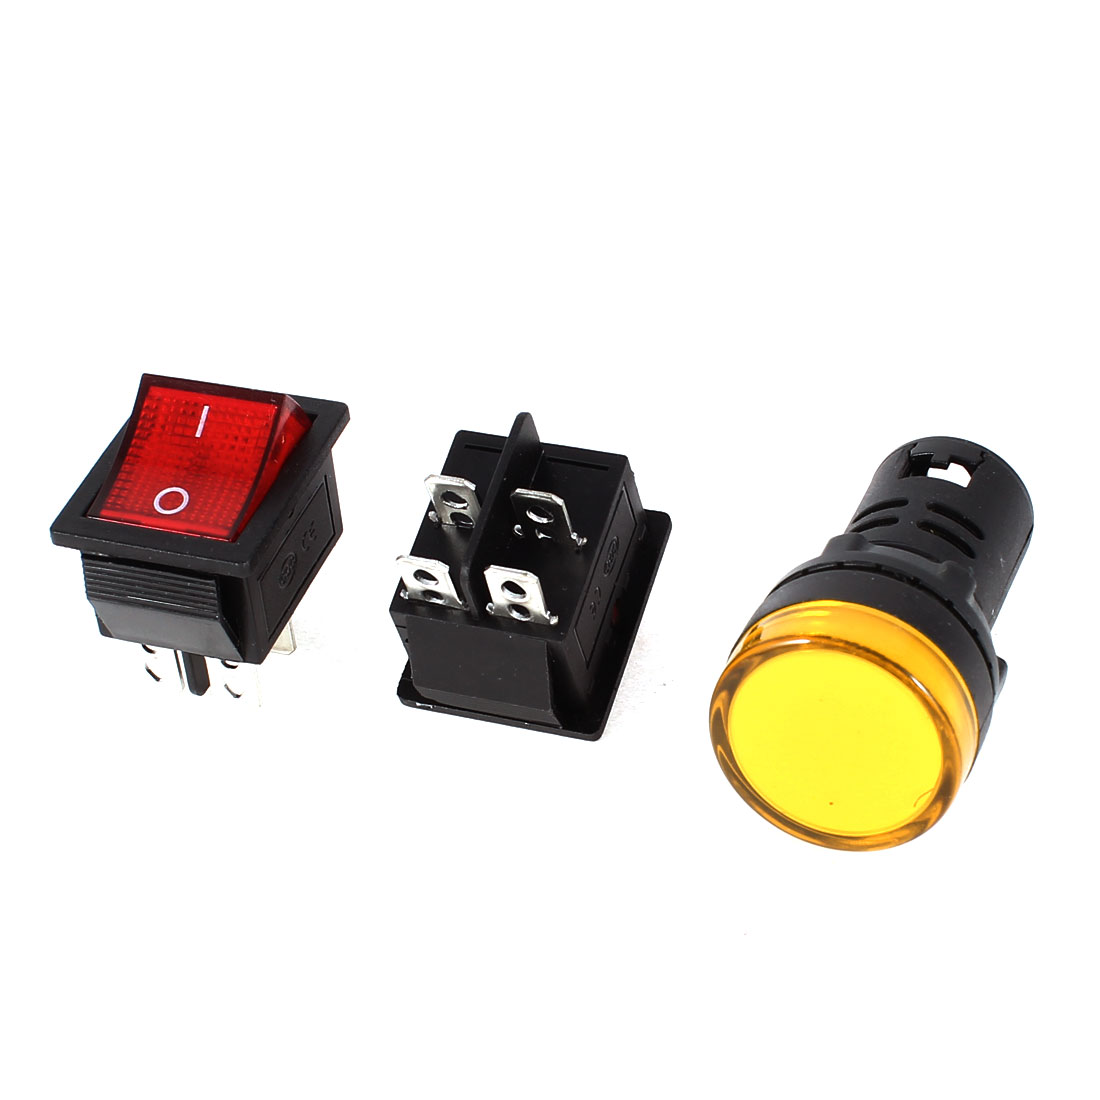 2x KCD4 DPST Red Light Rocker Switch + 1x AD16-22D/S Yellow Pilot LED Lamp DC 12V